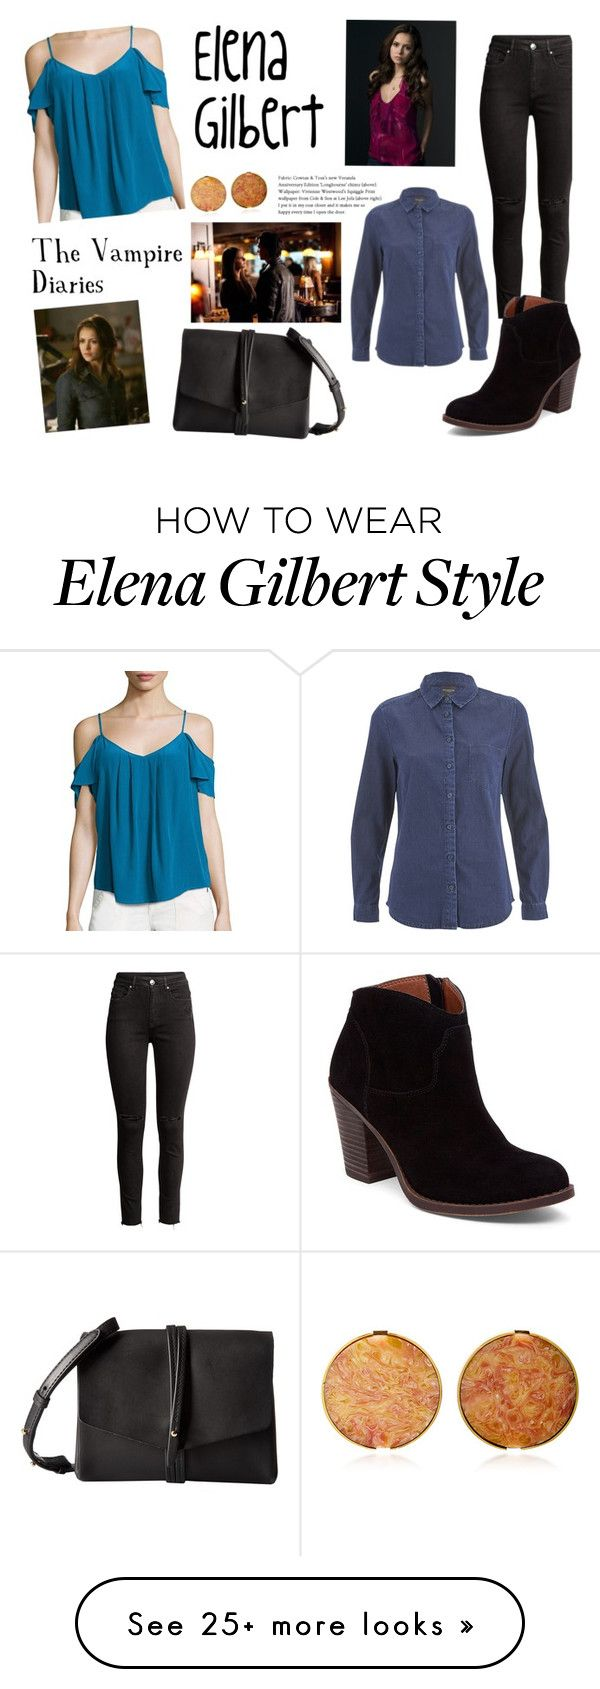 """""""Elena Gilbert style"""" by spencer-hastings-5 on Polyvore featuring Joie, Vince Camuto, Lucky Brand, SELECTED and E L L E R Y"""